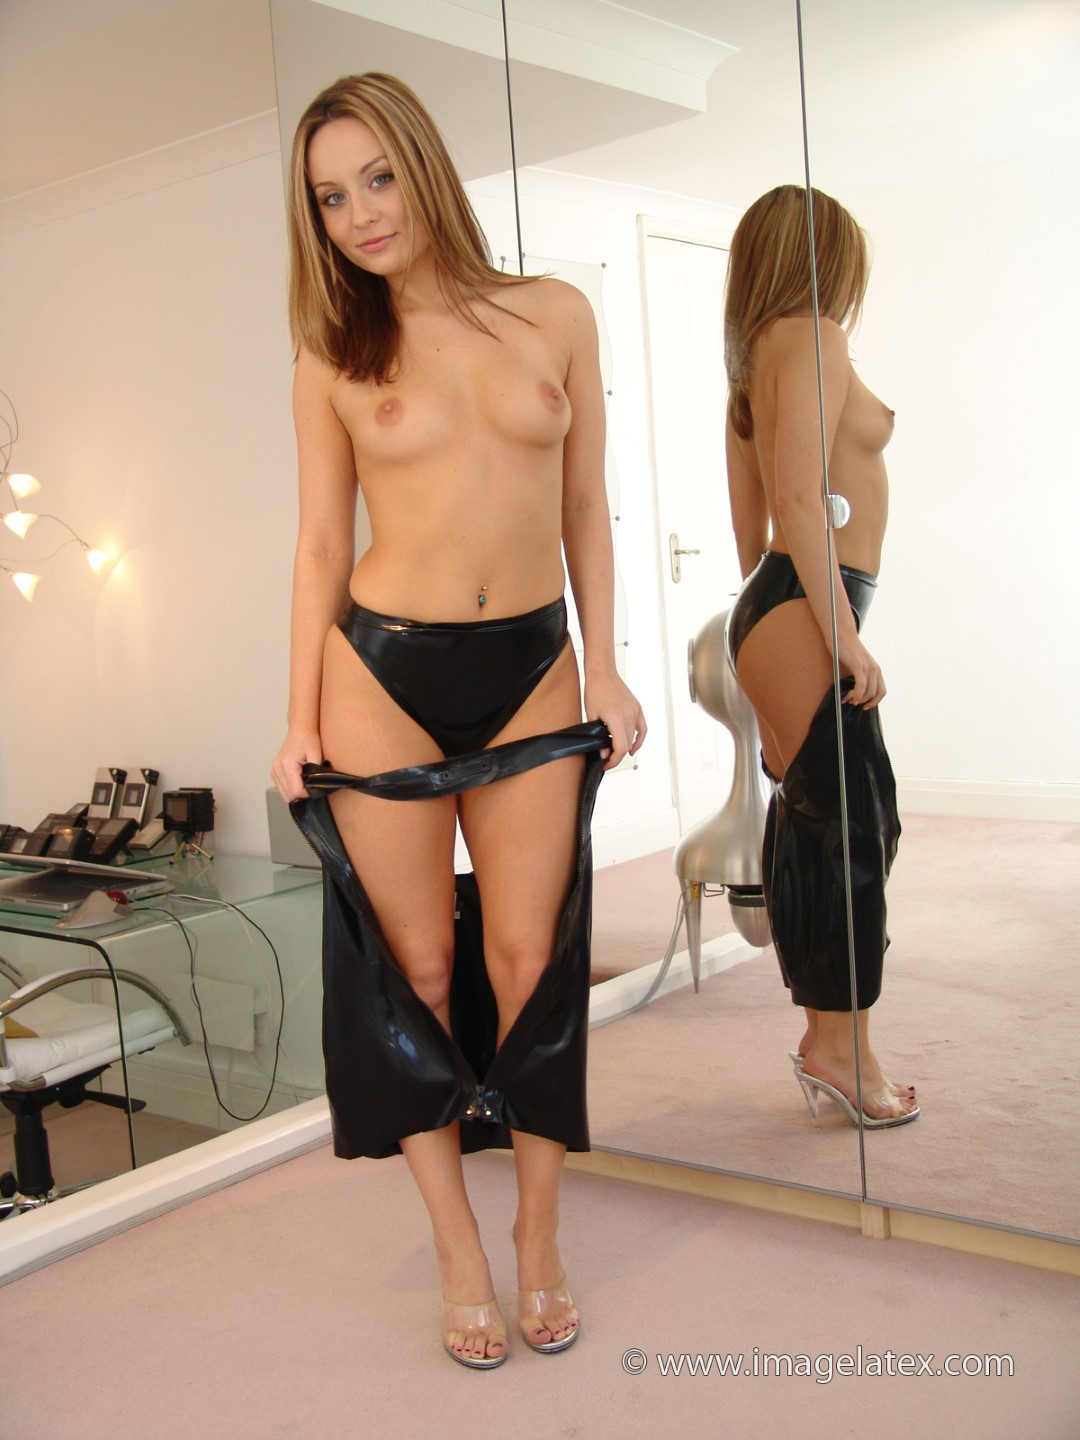 Herman recommend best of latex asian panties